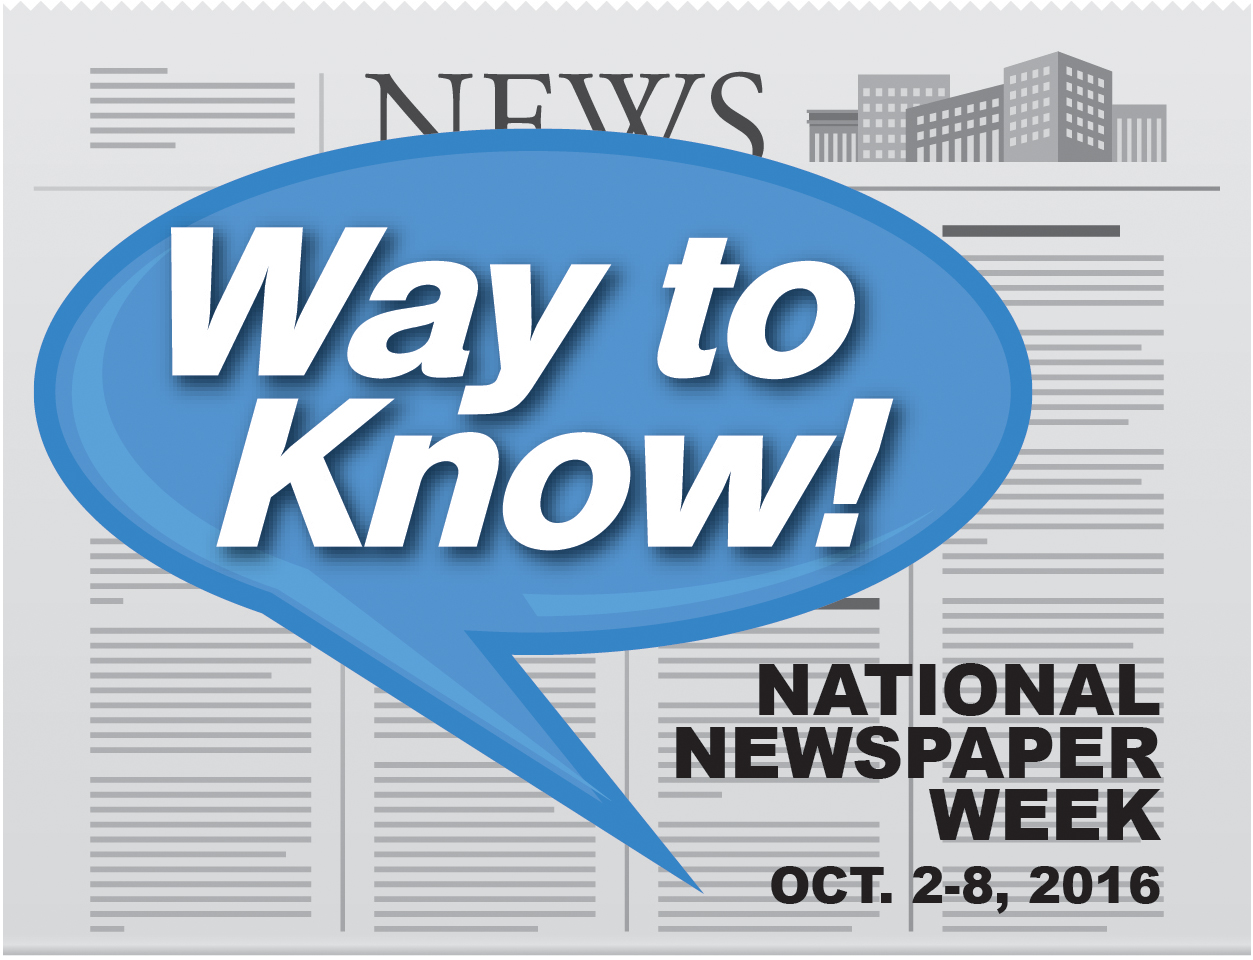 National Newspaper Week 2016